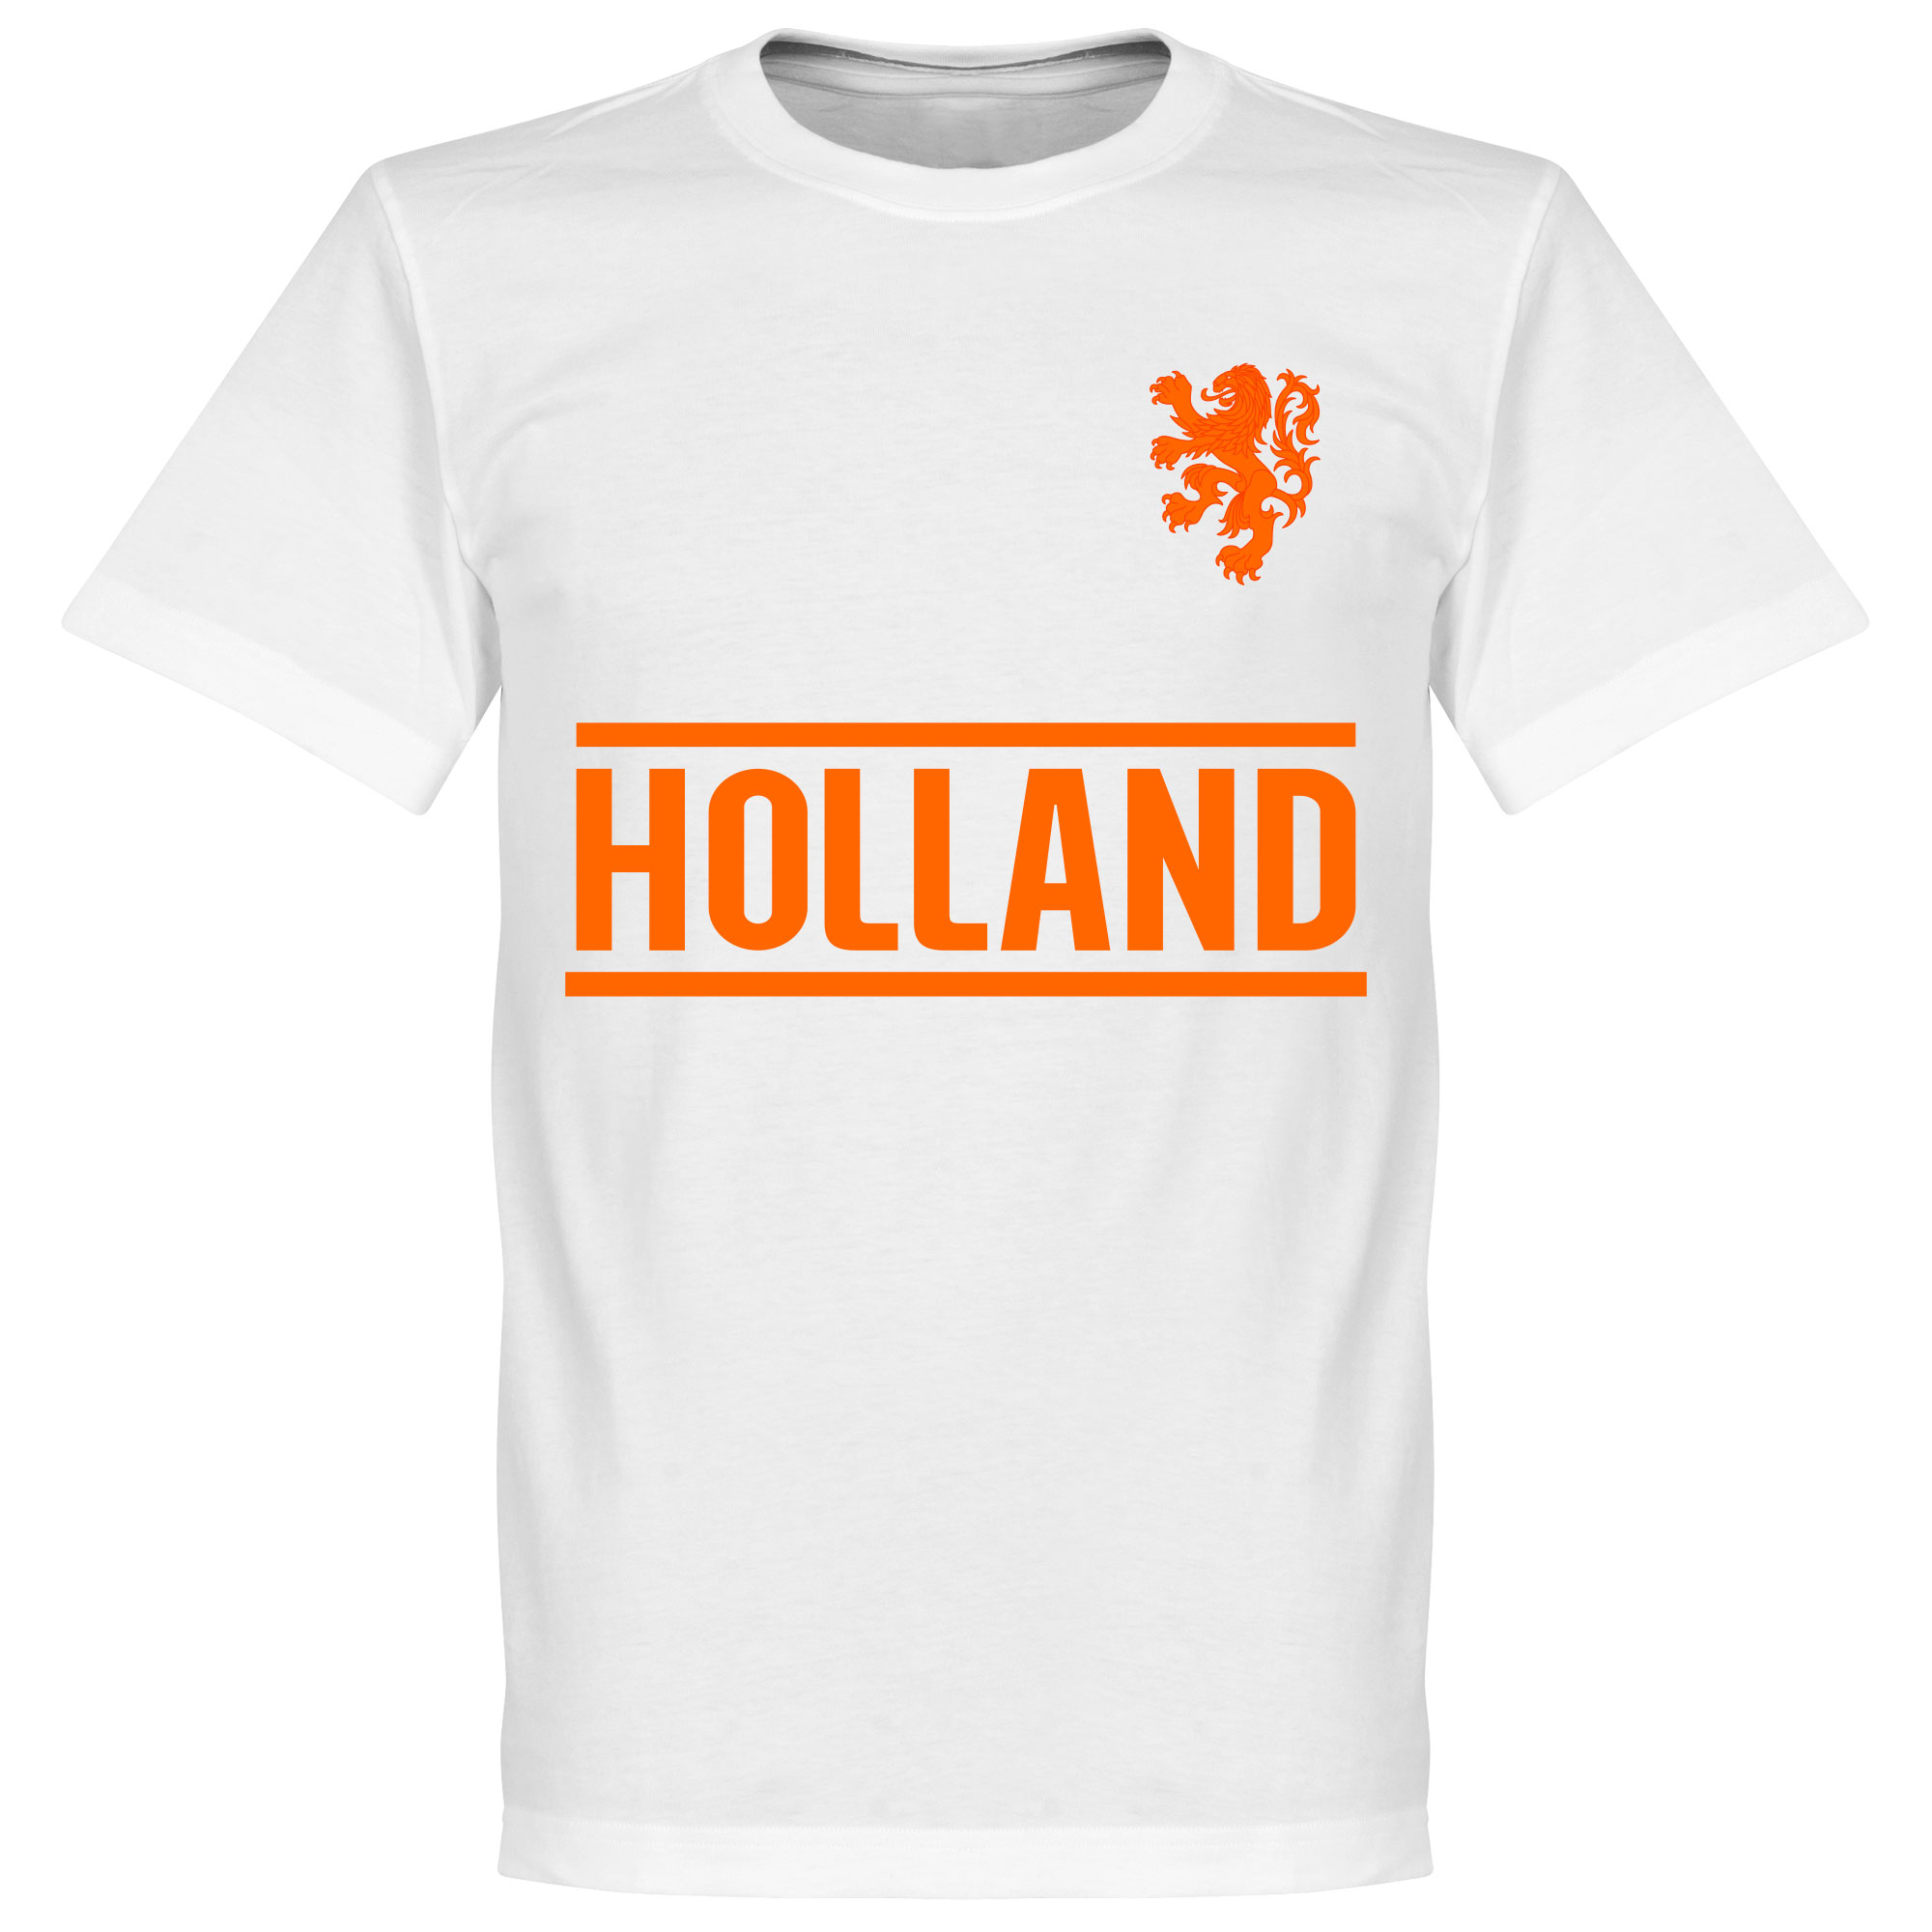 Holland Team Tee - White - M